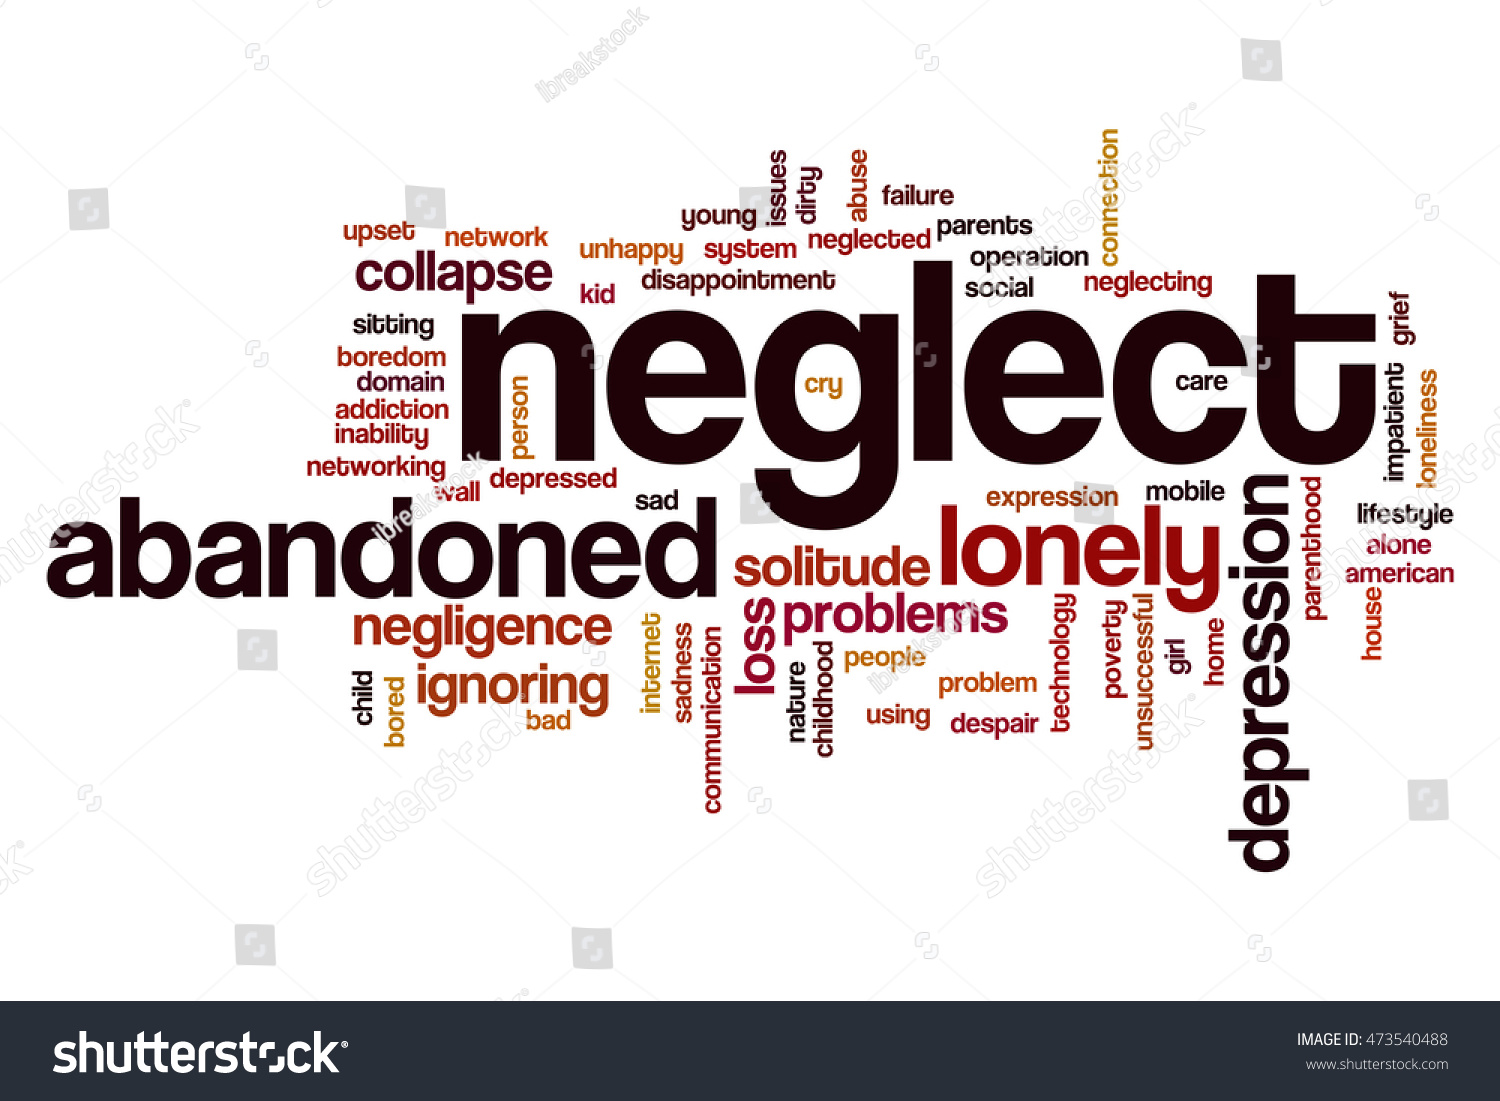 Social and Economic Consequences of Child Abuse and Neglect